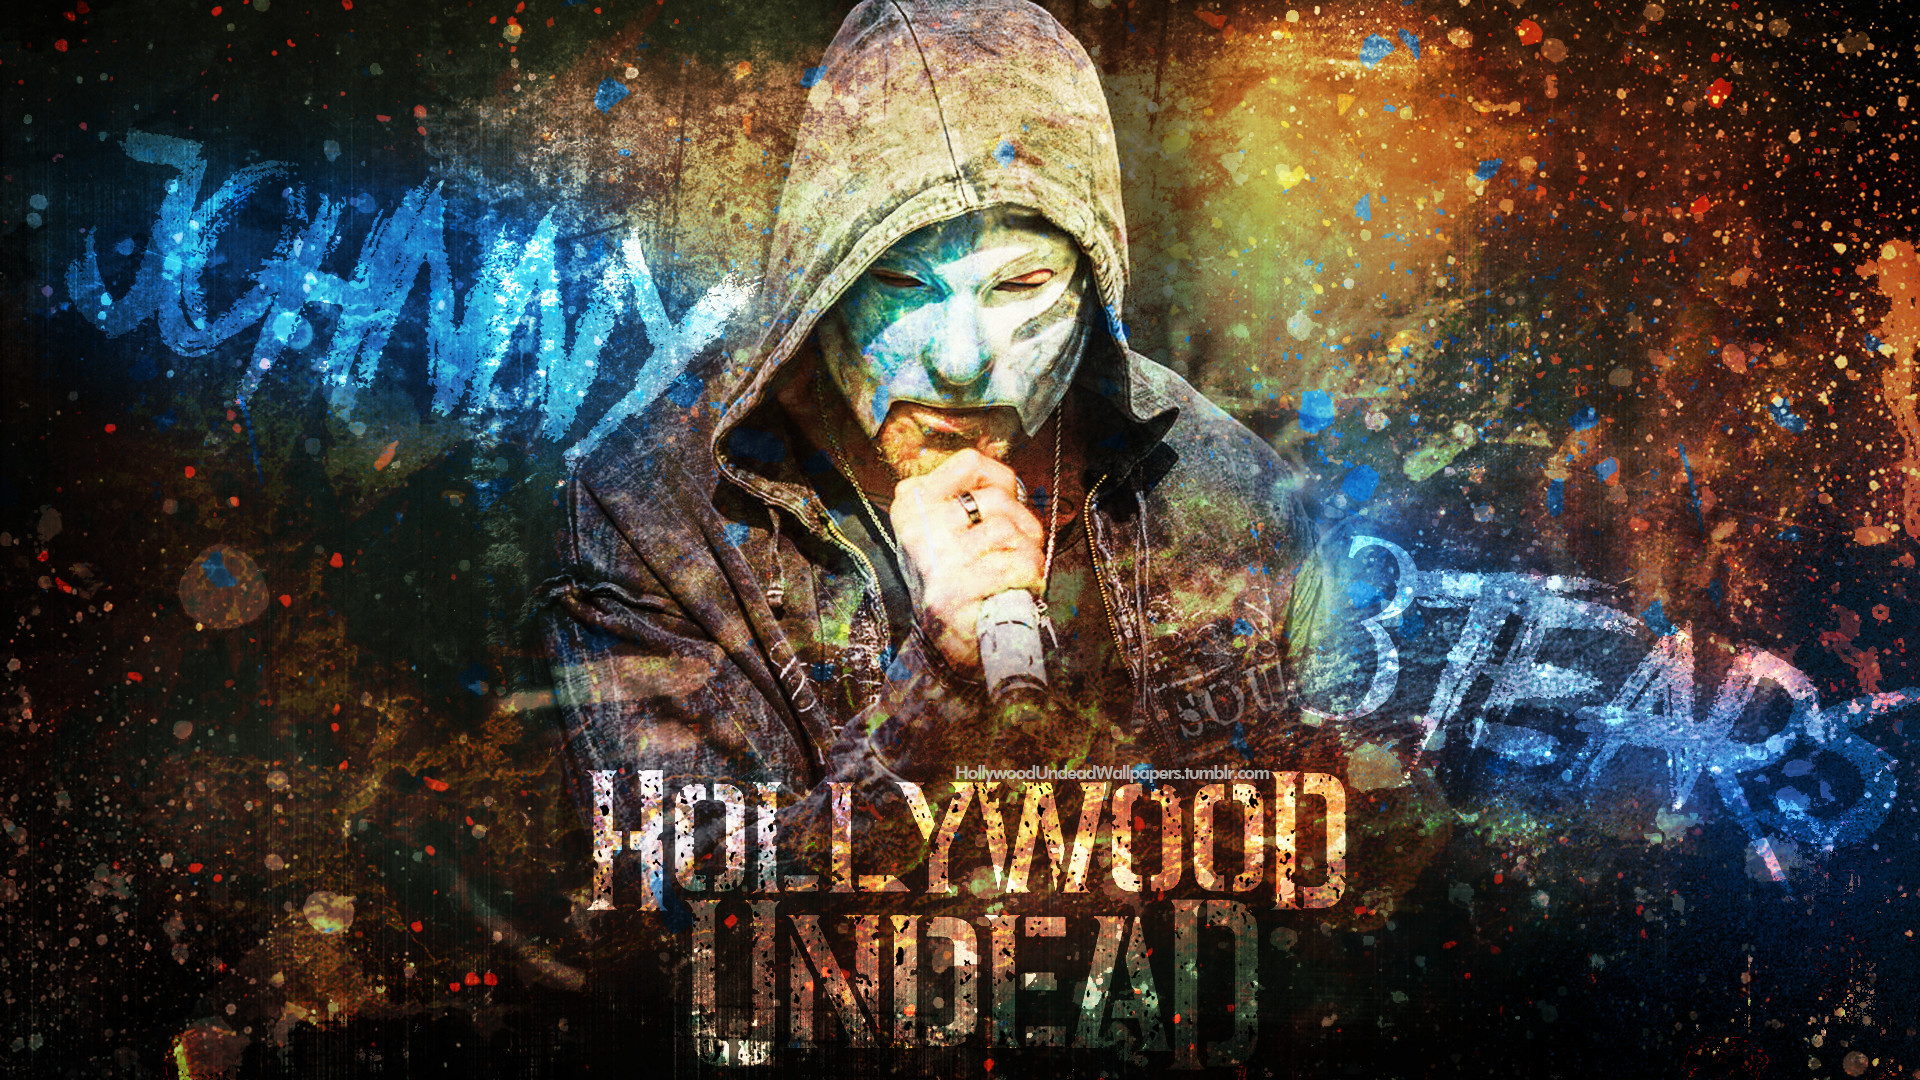 Res: 1920x1080, Hollywood Undead Wallpaper 24 - 1920 X 1080